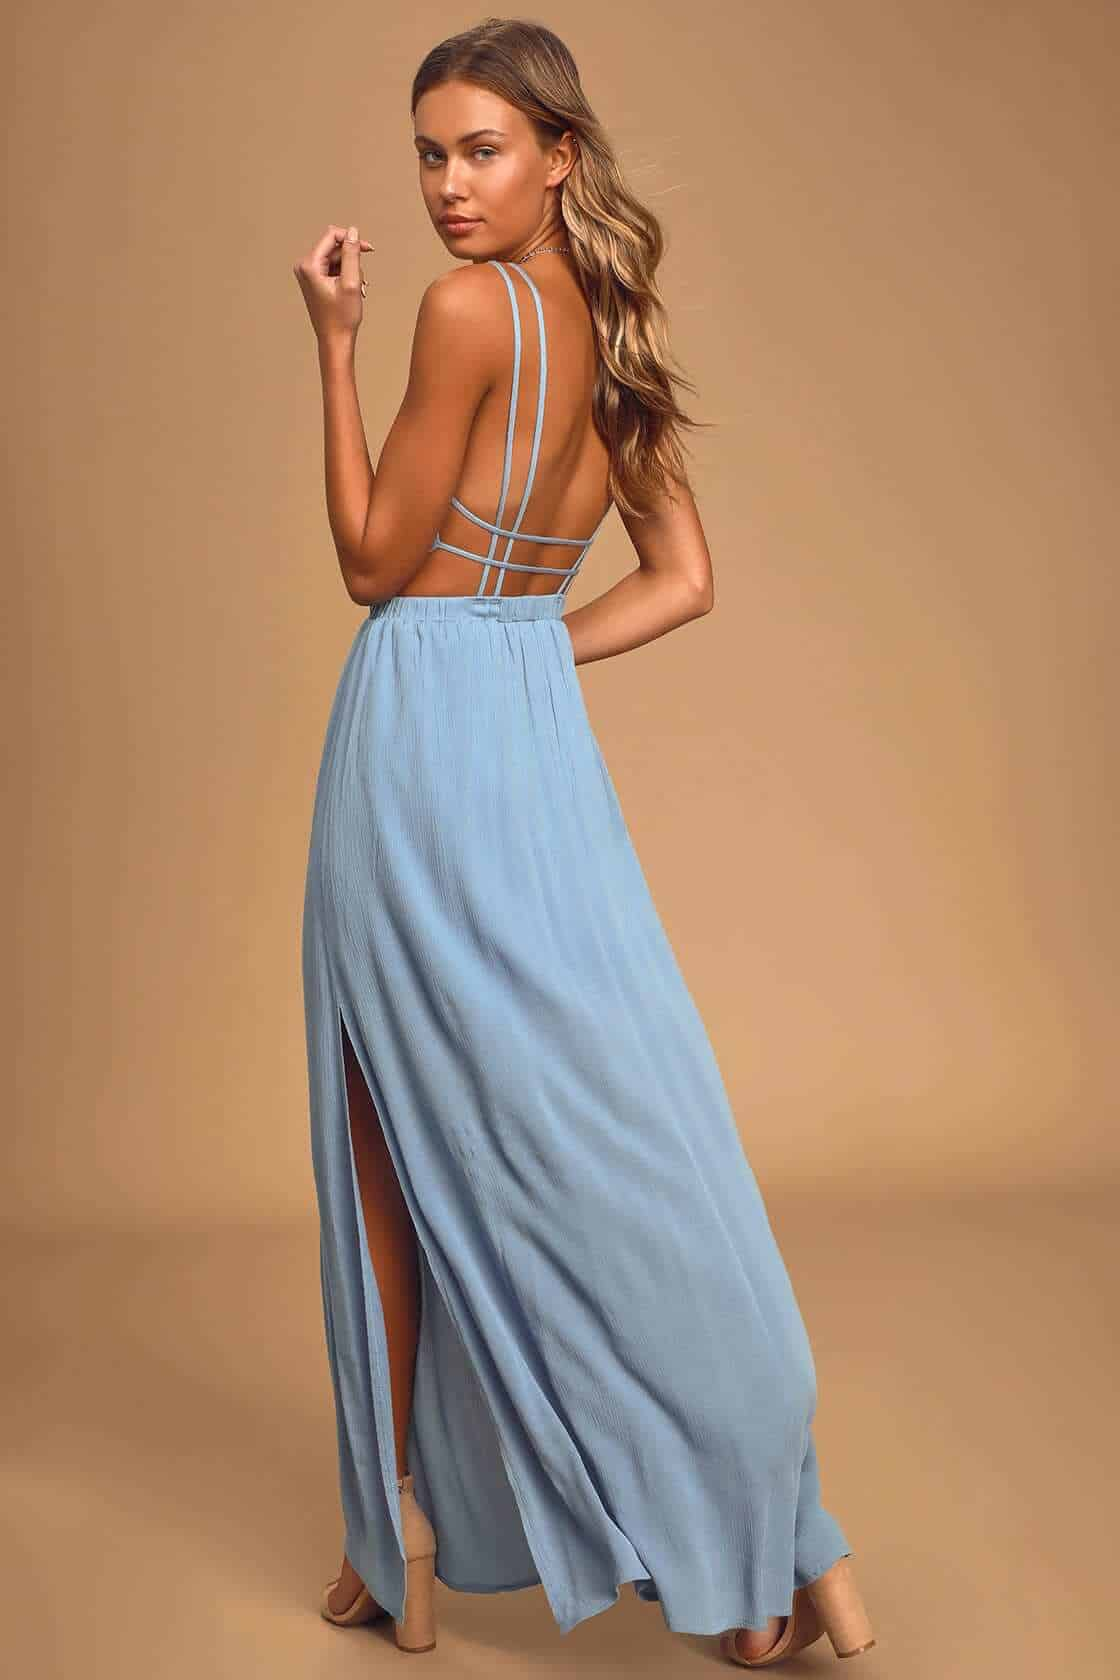 Wedding Guest Outfits Light Blue Backless Maxi Dress What to Wear to a Wedding as a Guest (1)